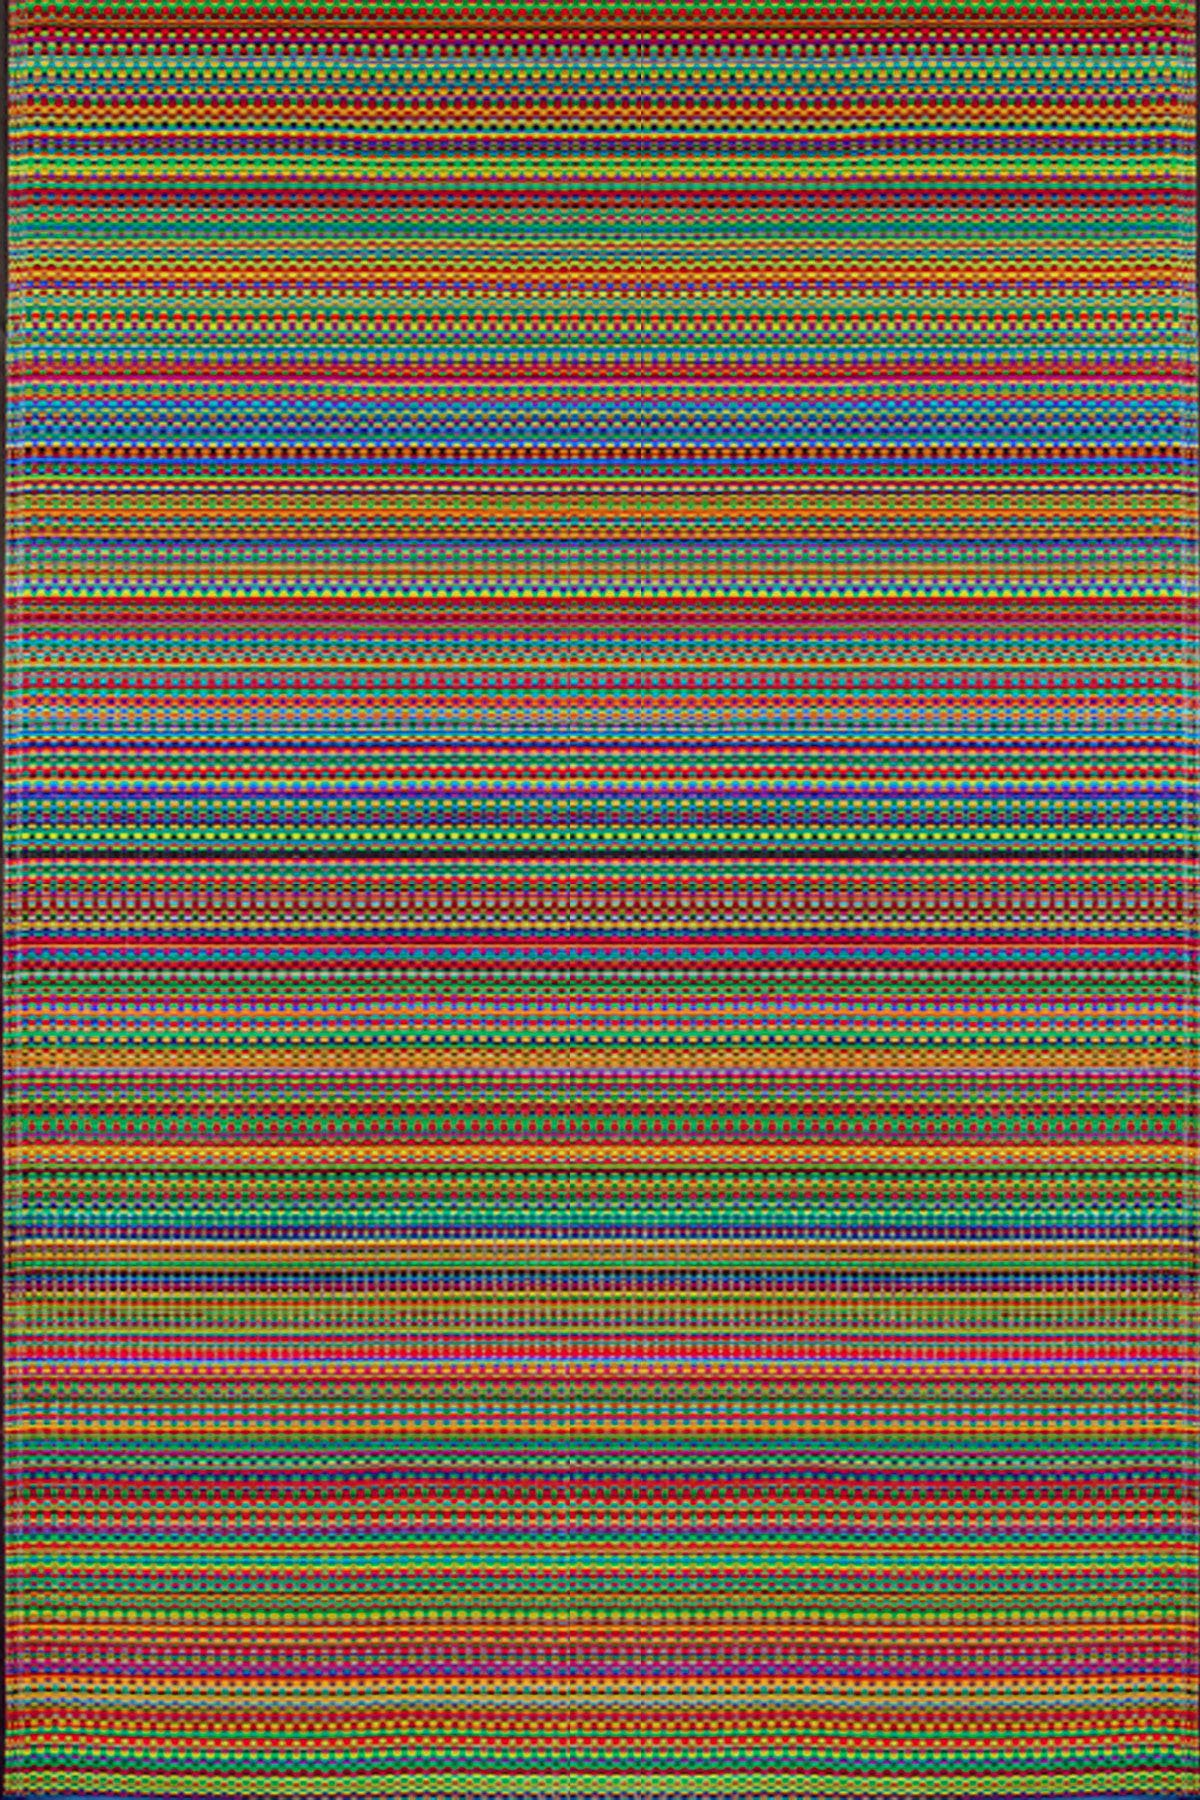 Mad Mats Mix Indoor/Outdoor Floor Mat, 6 by 9 Feet, Rainbow